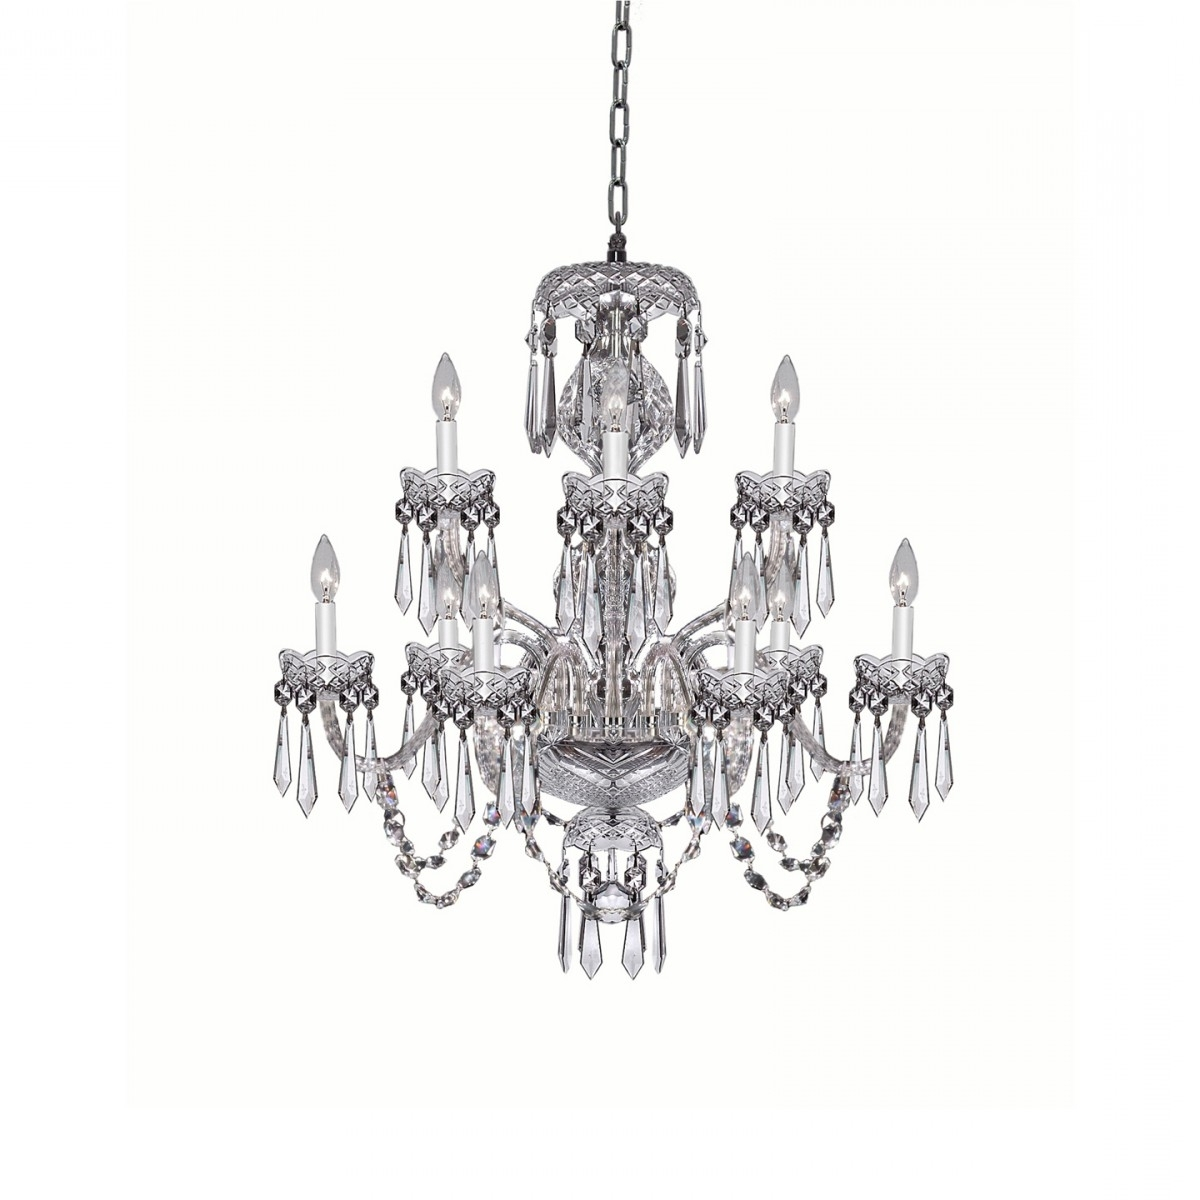 Crystal Chandeliers Regarding Best And Newest Crystal Chandeliers & Lighting – Waterford® Official Us Site (View 18 of 20)